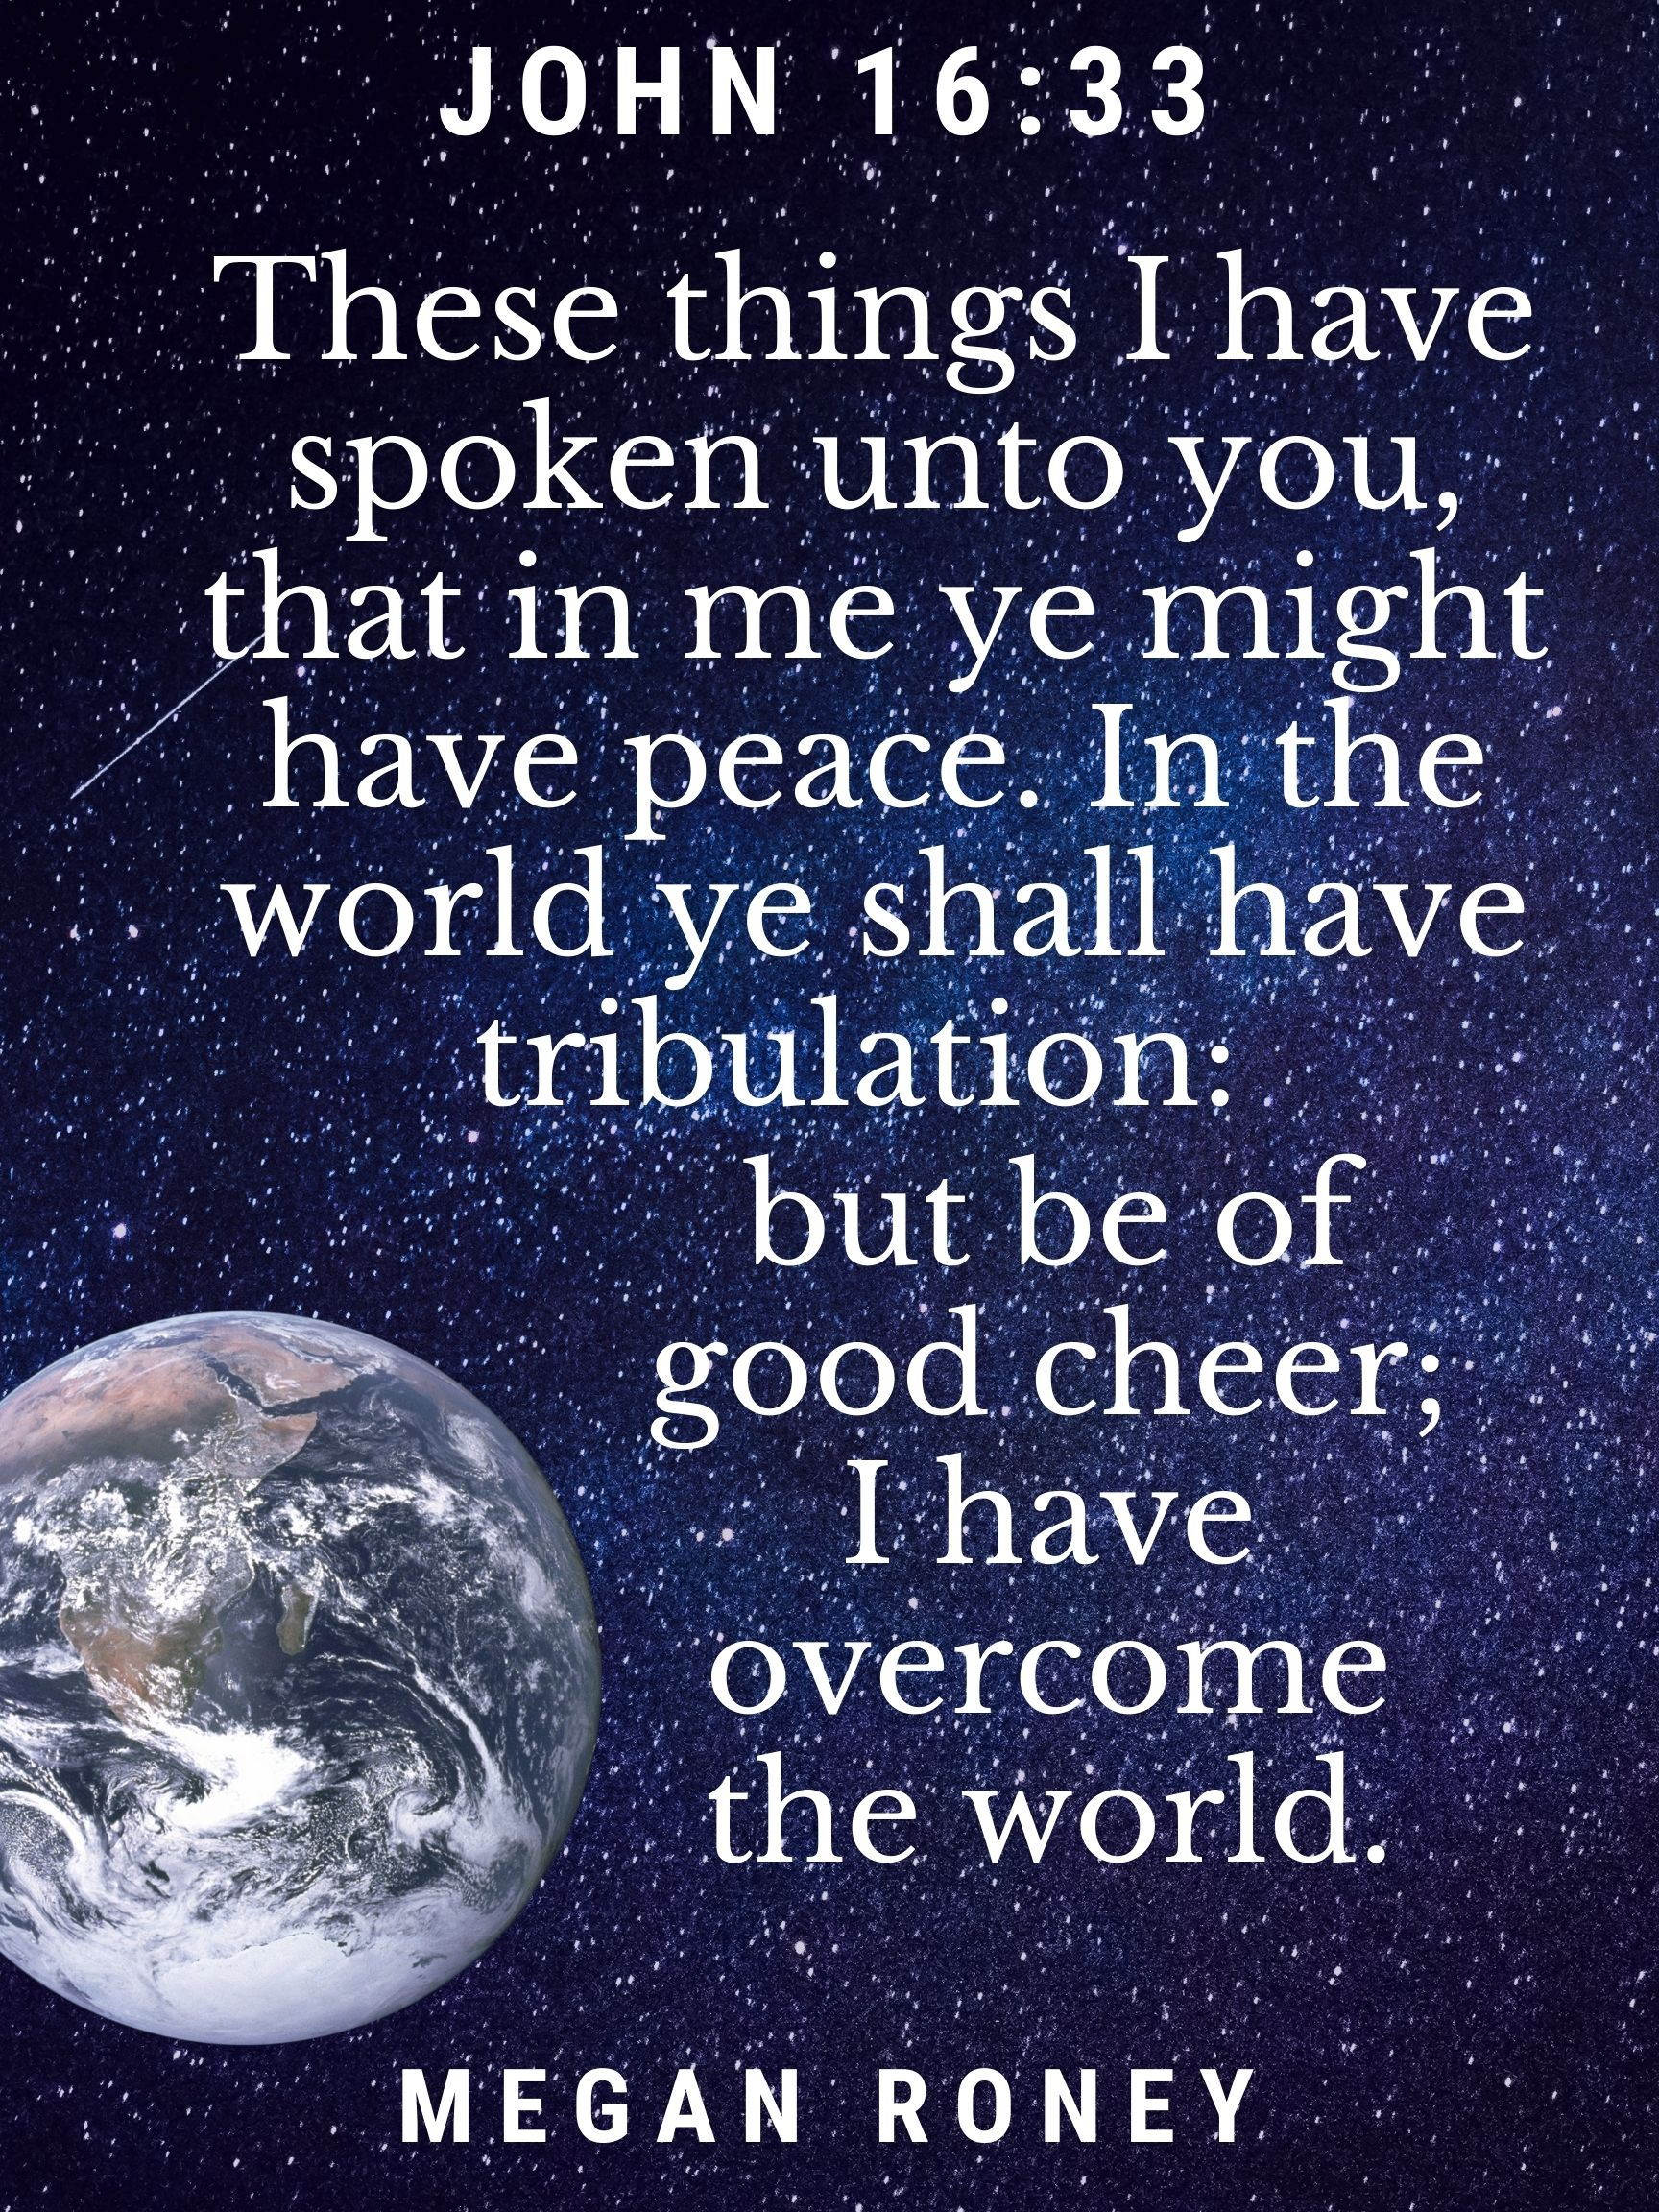 These things I have spoken unto you, that in me ye might have peace. In the world ye shall have tribulation: but be of good cheer; I have overcome the world. John 16:33 Megan Roney